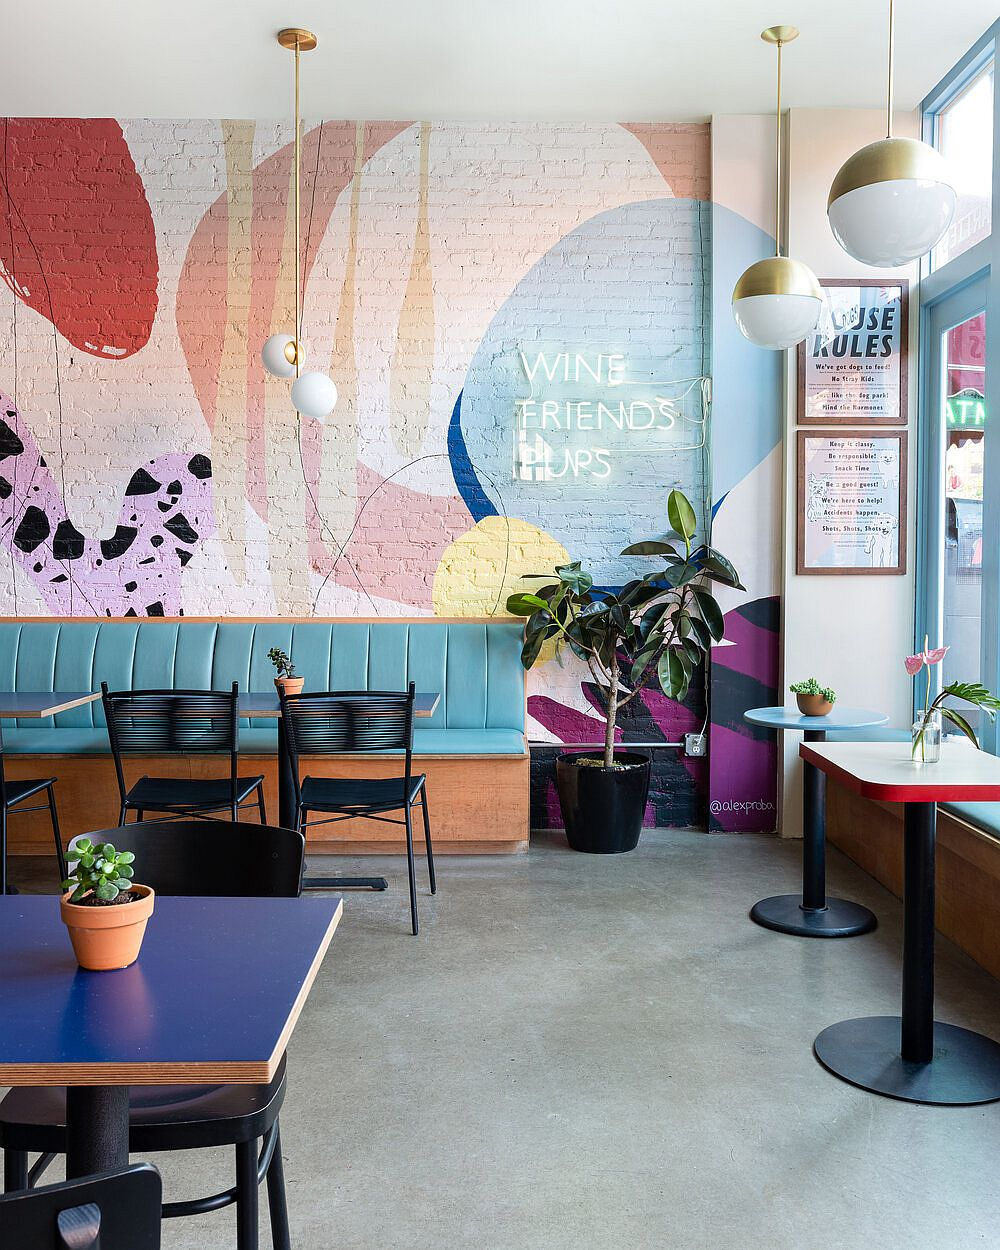 Modern, bright and colorful interior of Boris & Horton on New York City is a showstopper